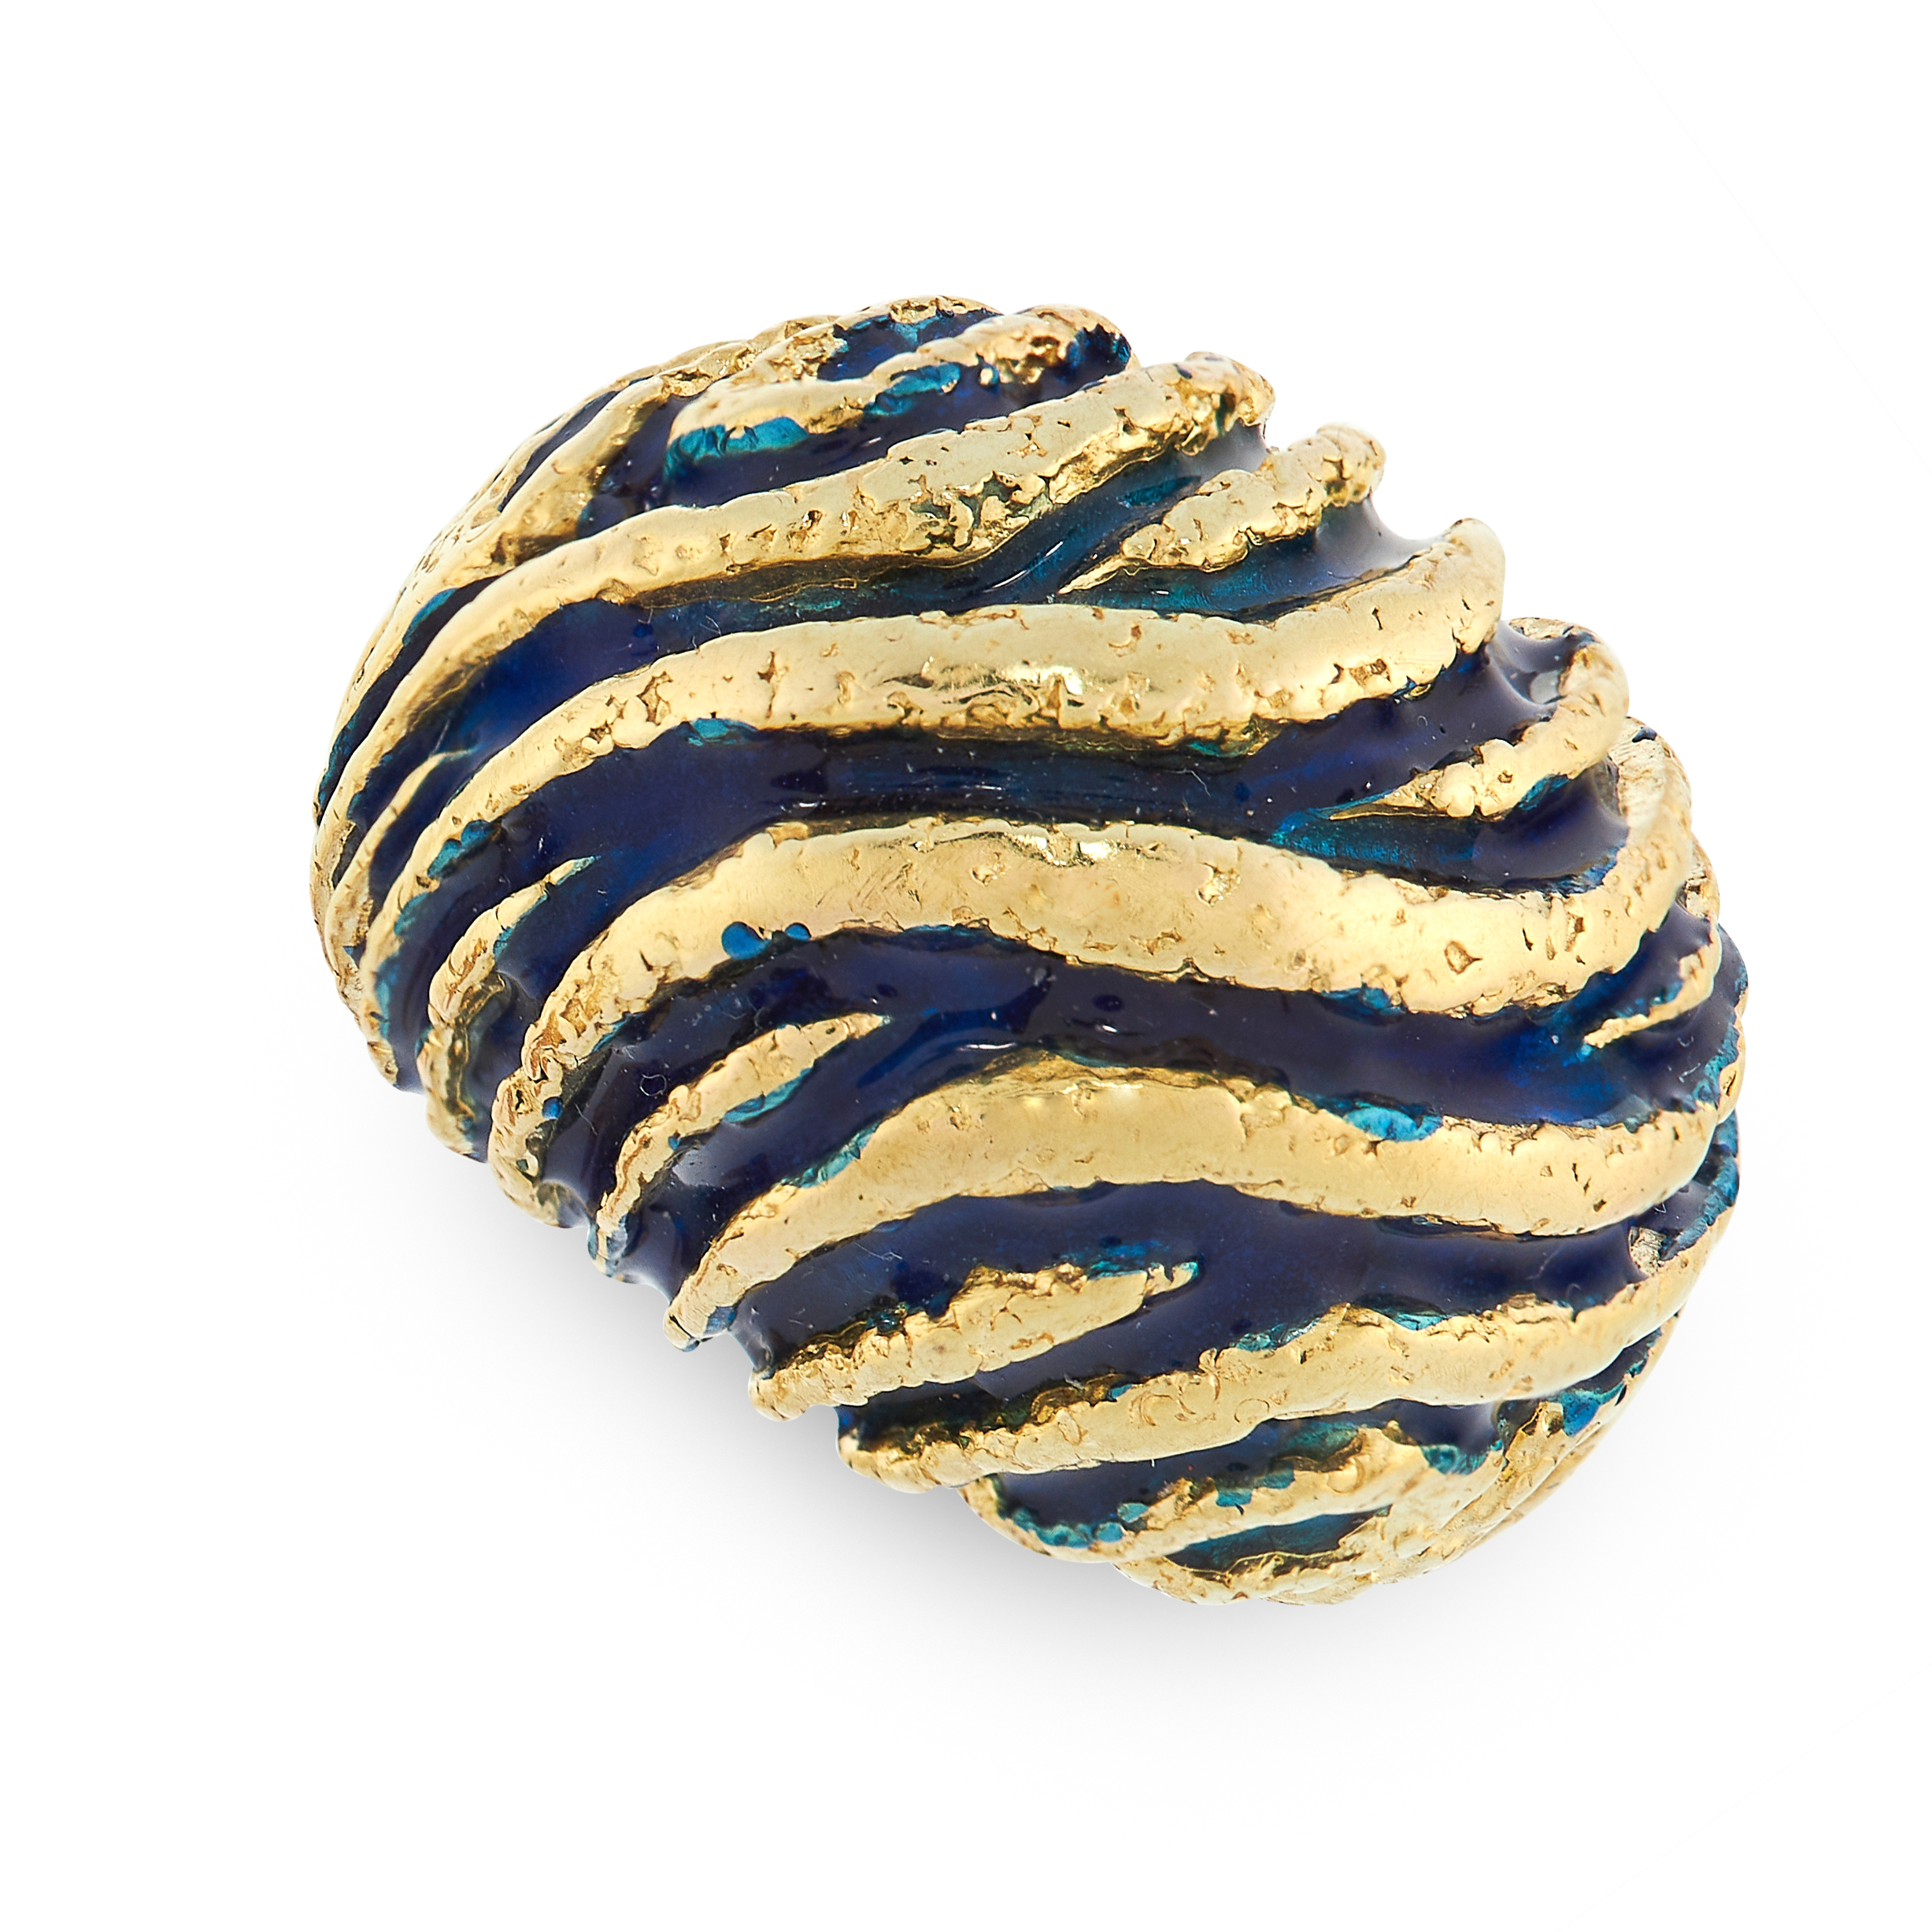 ENAMEL RING, VAN CLEEF & ARPELS in bombe form, the surface textured with alternating twisted gold